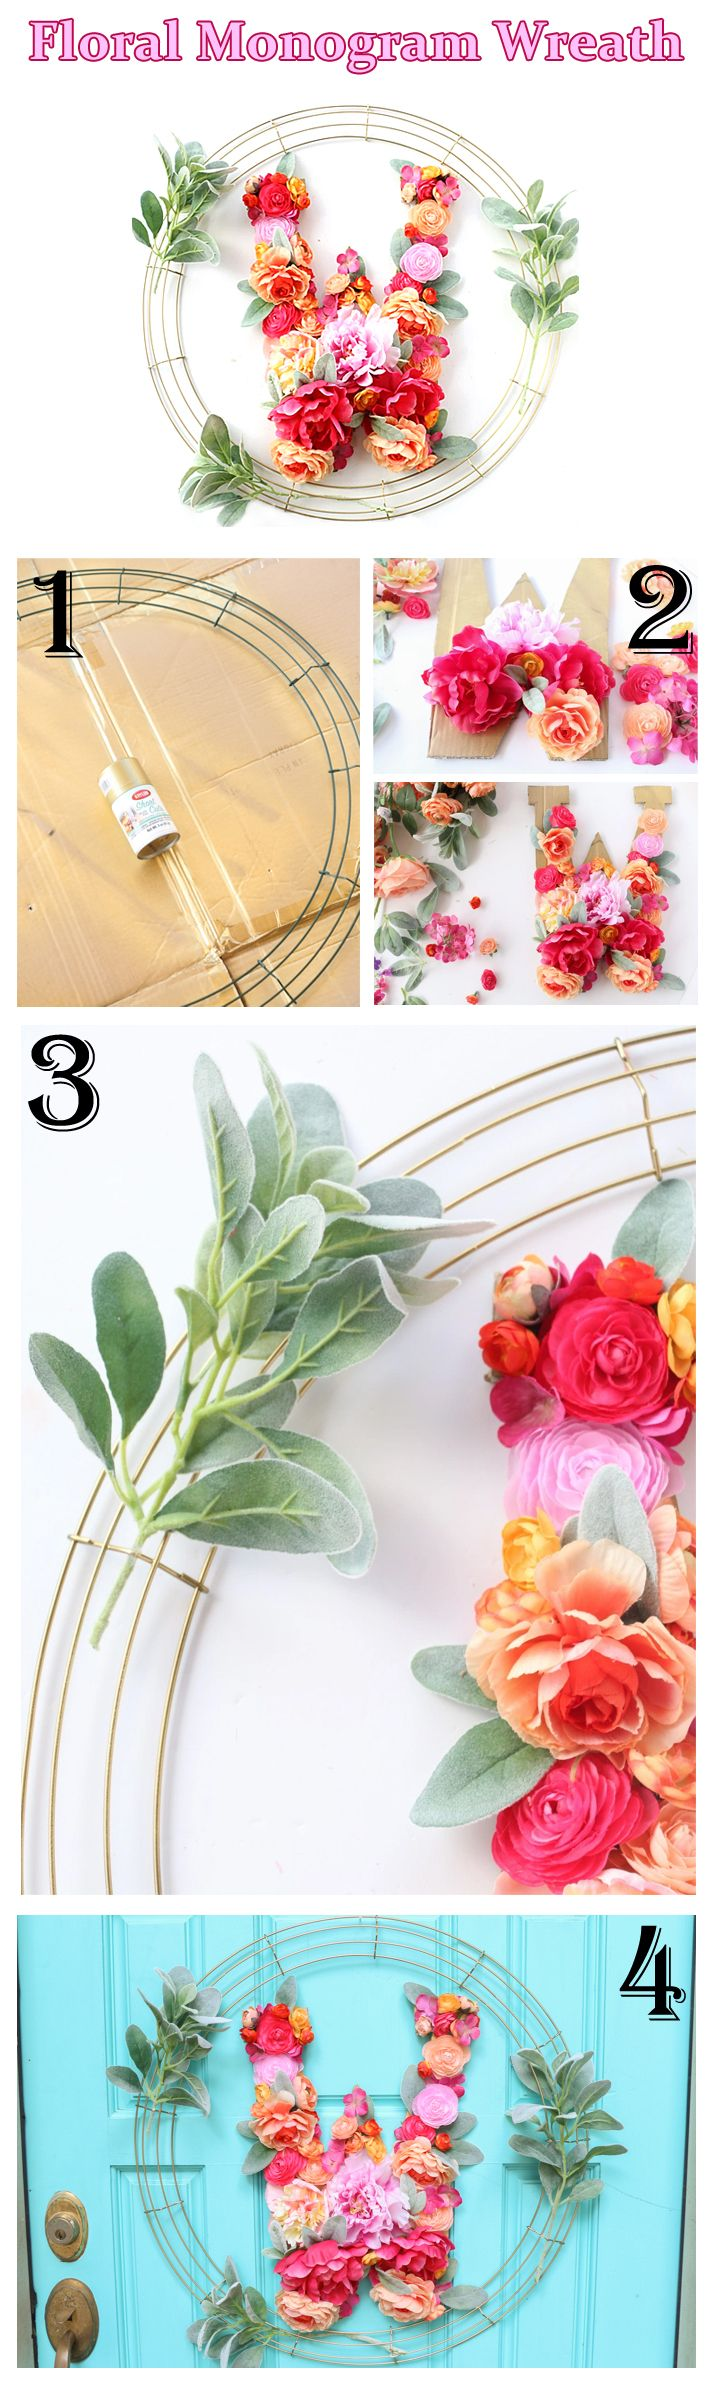 227 best The Big Bloom images on Pinterest | A natural, Fabric ...